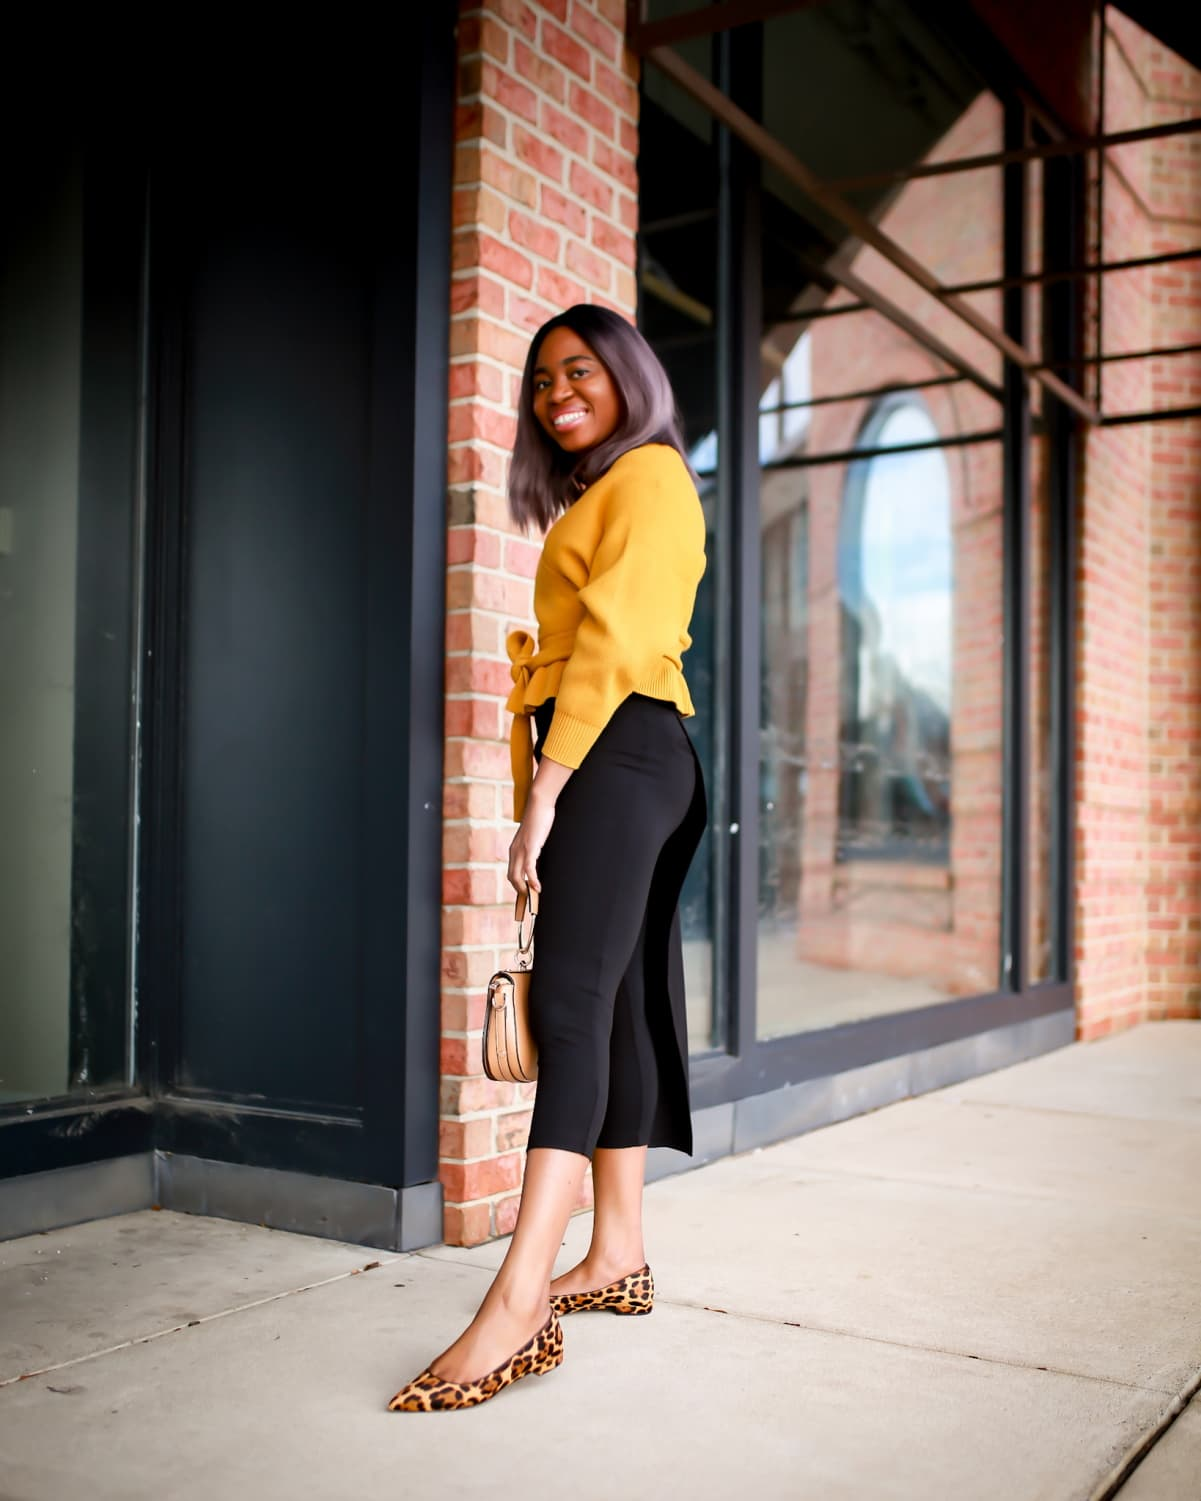 Full disclaimer, Betabrand work pants are arguably the most comfortable work pants I've ever owned. I love the look, the feel, and the style of these classic yoga pants. I splurged on the best-selling sassiest pants and...